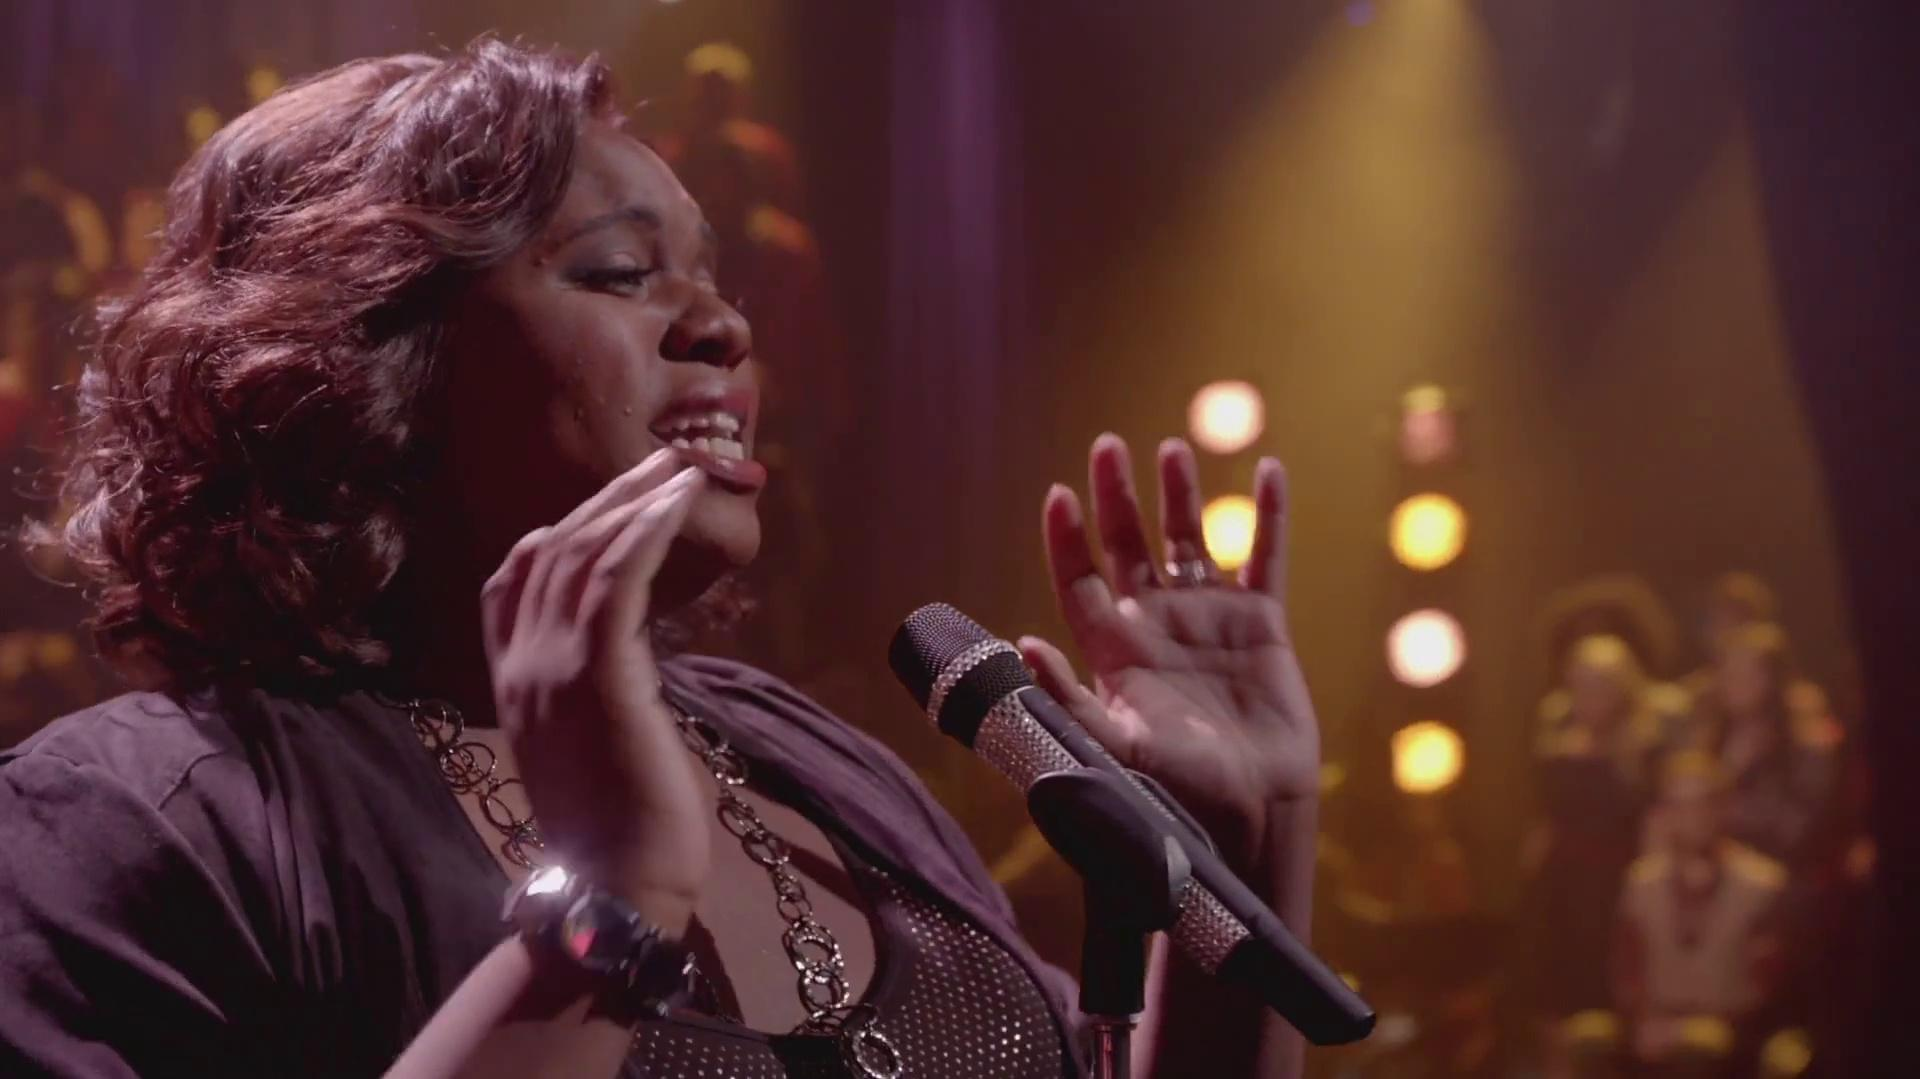 Alex Newell - I Know Where I've Been (Queen Latifah) (Hairspray) - from Glee Transitioning